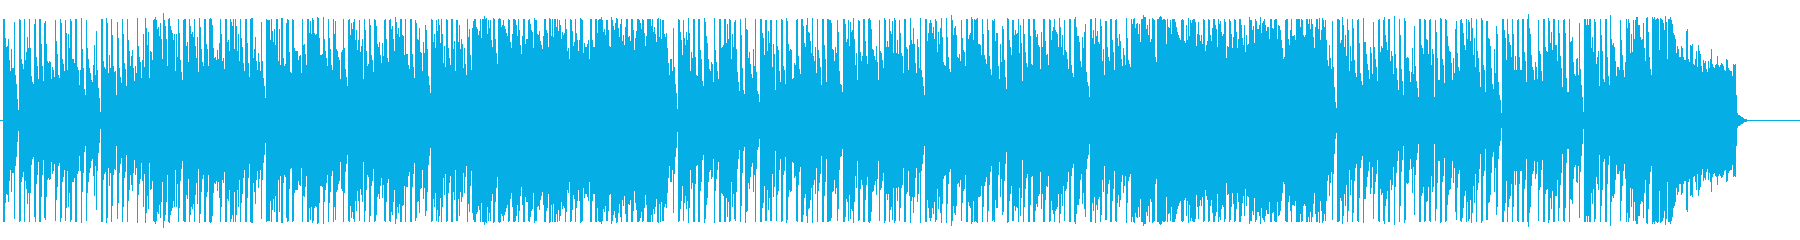 Pop and cool background music's reproduced waveform